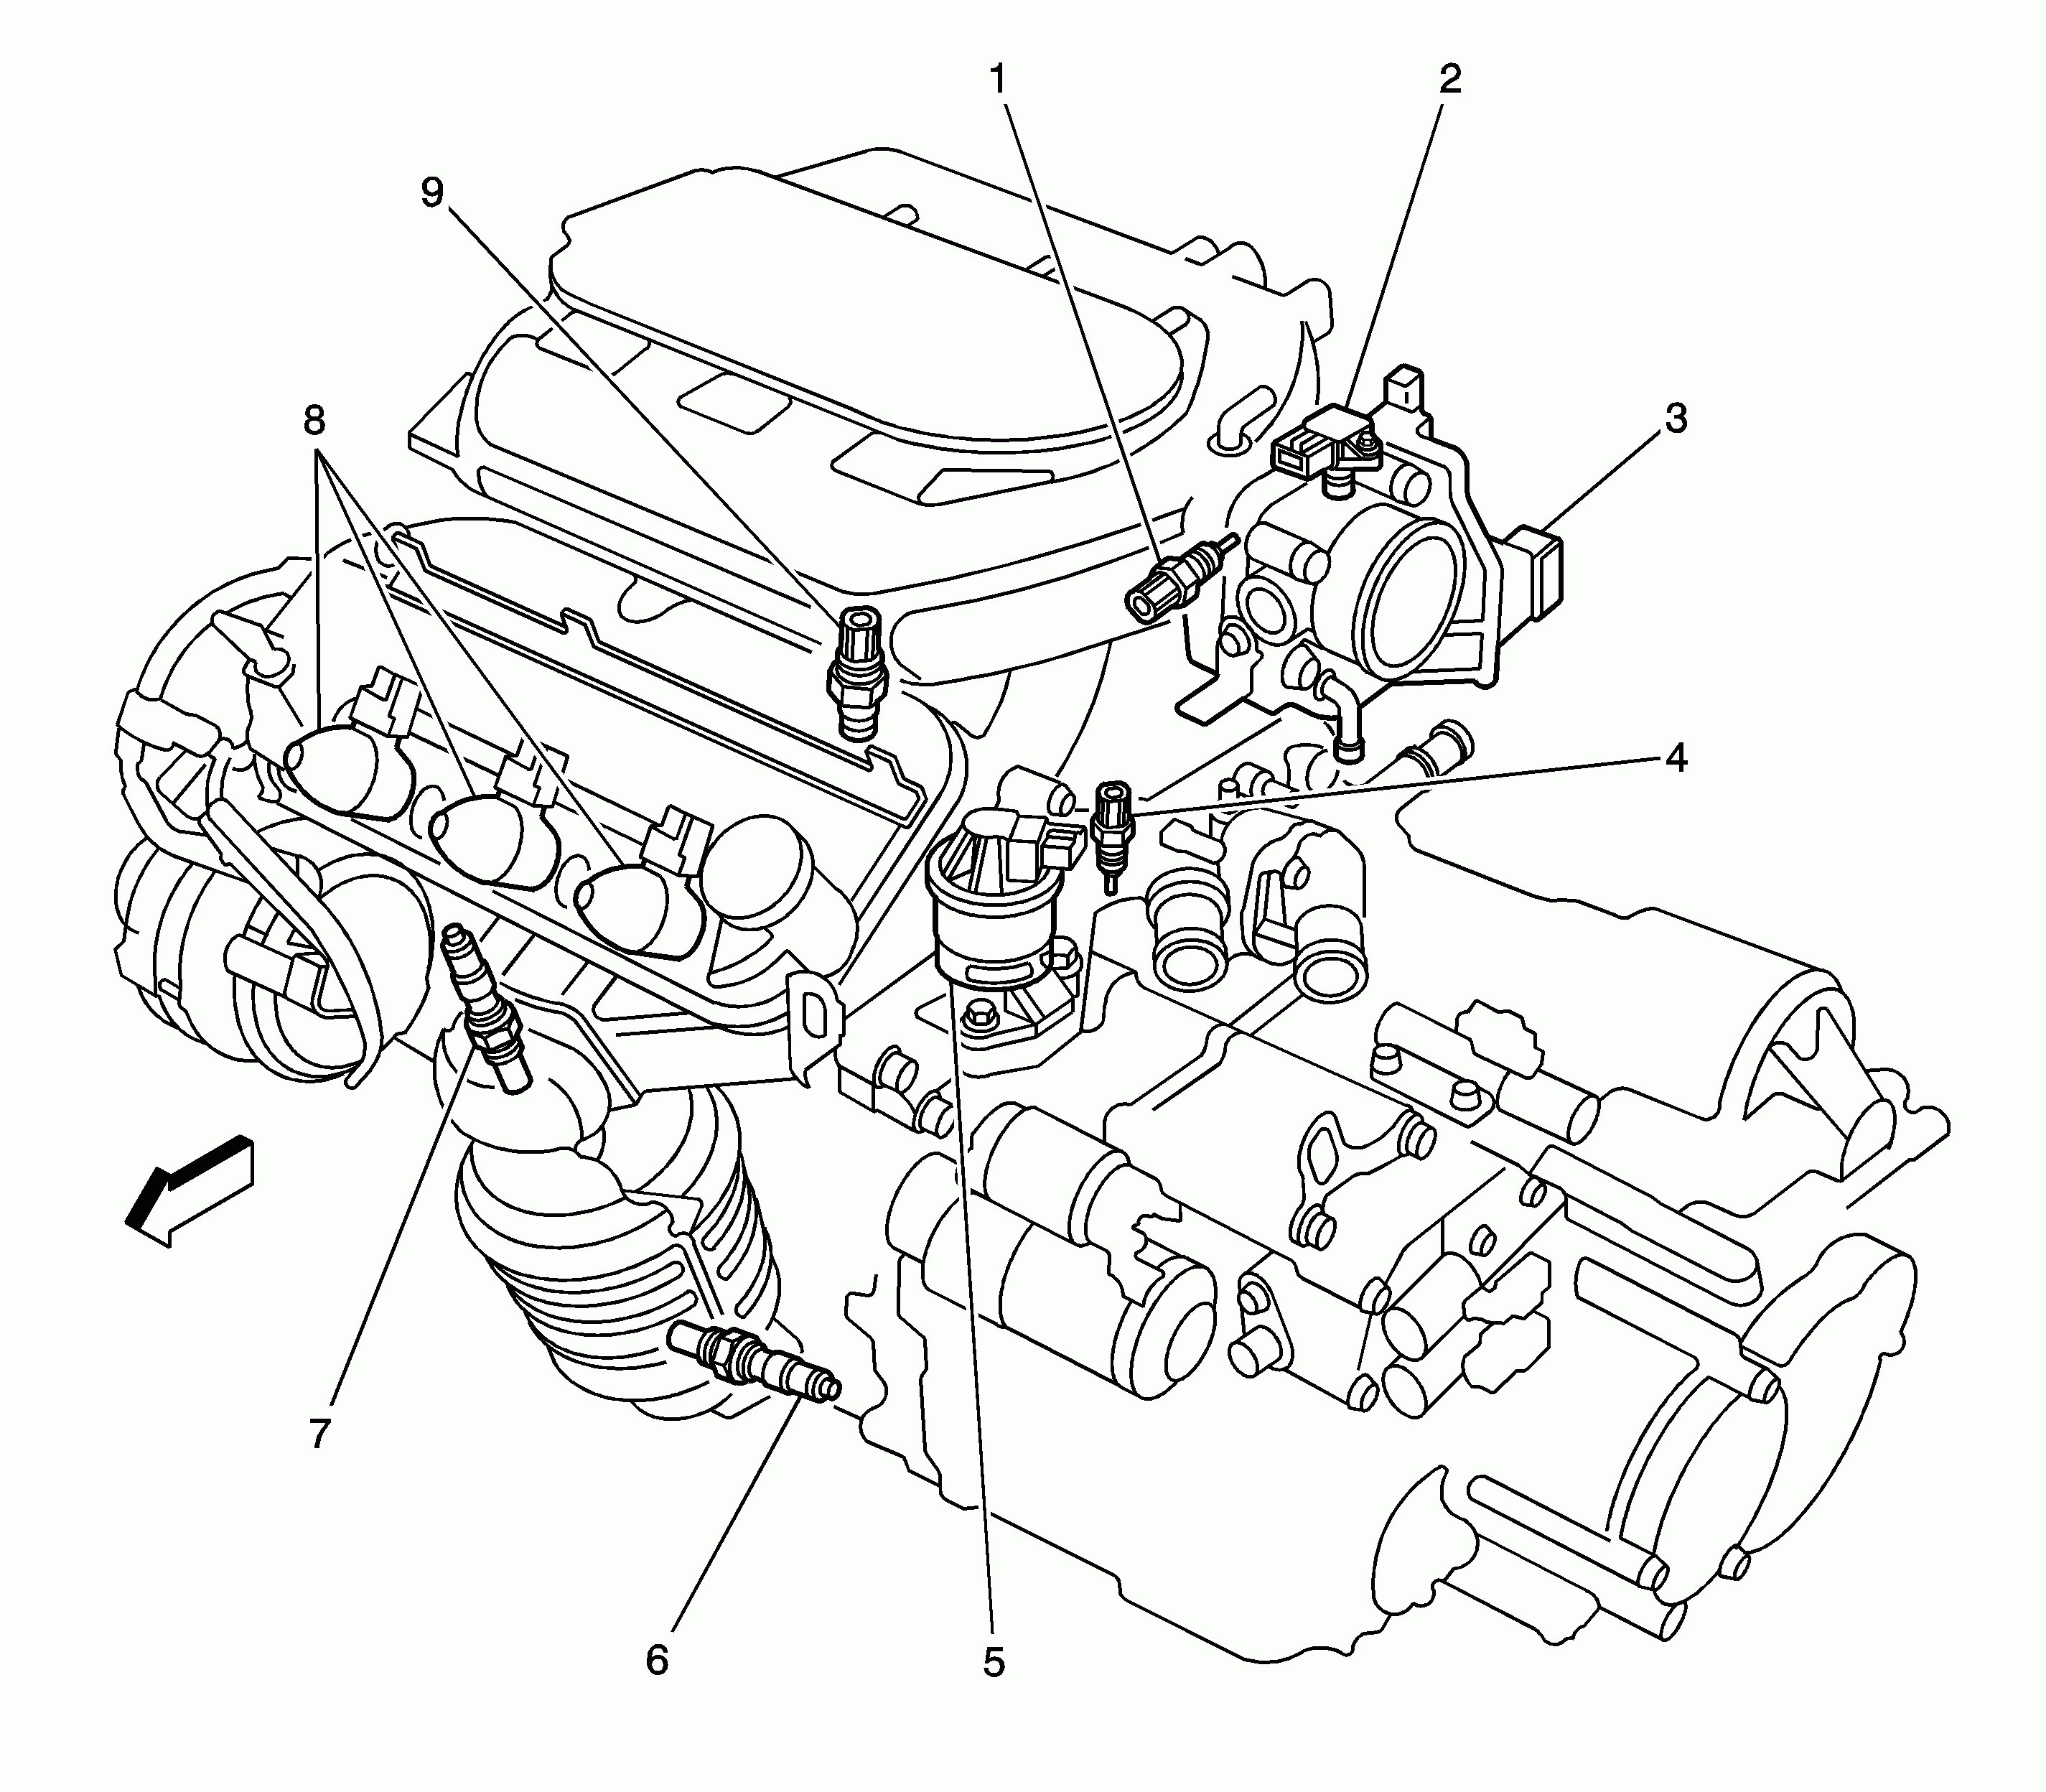 2007 Saturn Aura Engine Diagram Cool Review About Saturn Aura 2008 with Awesome Of 2007 Saturn Aura Engine Diagram